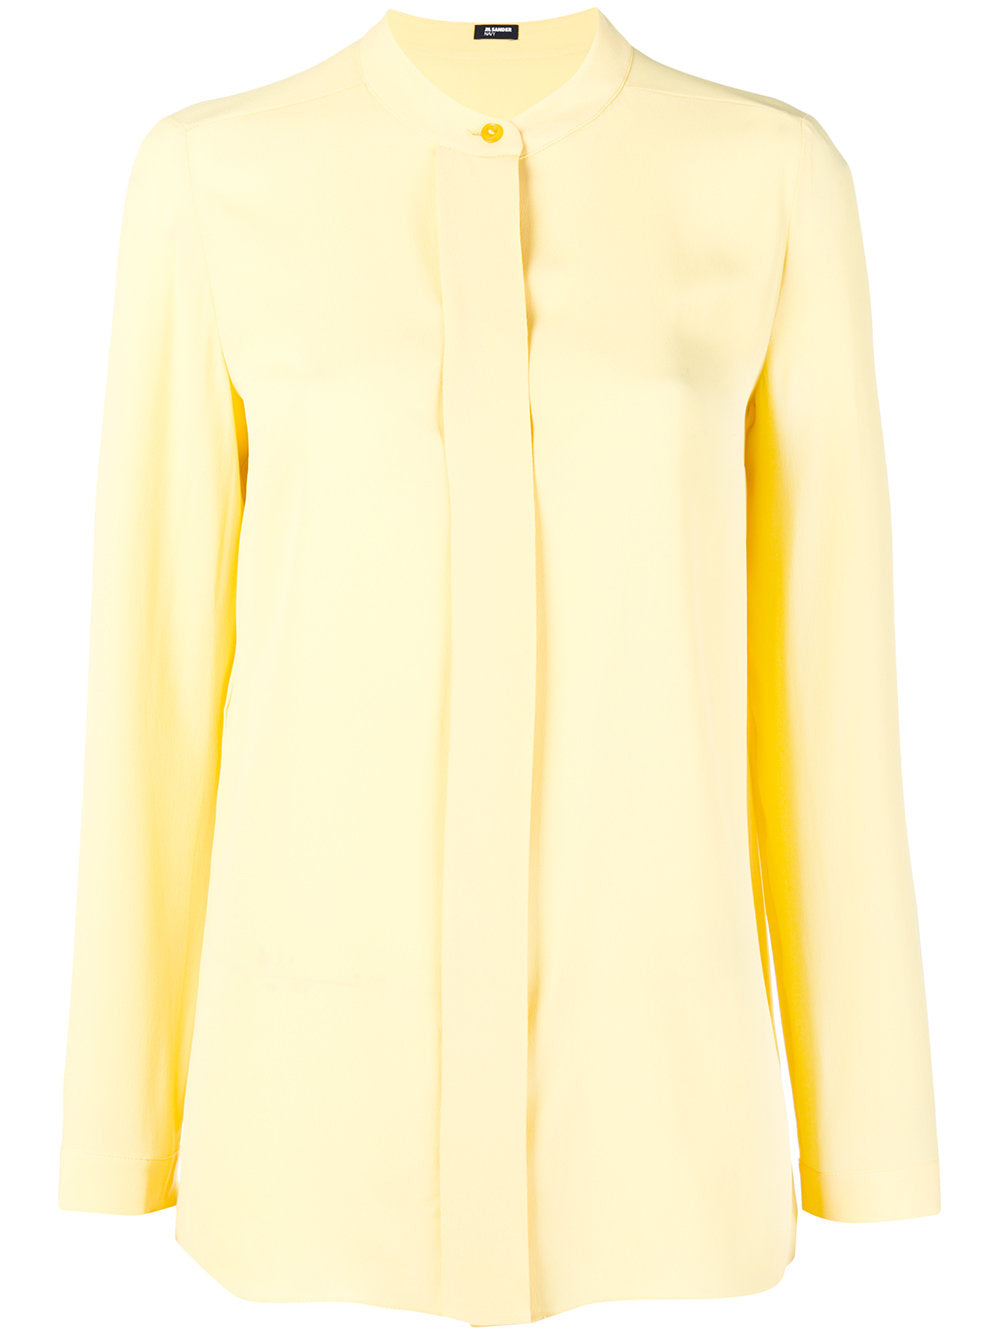 JIL SANDER NAVY - SINGLE BUTTON BLOUSE